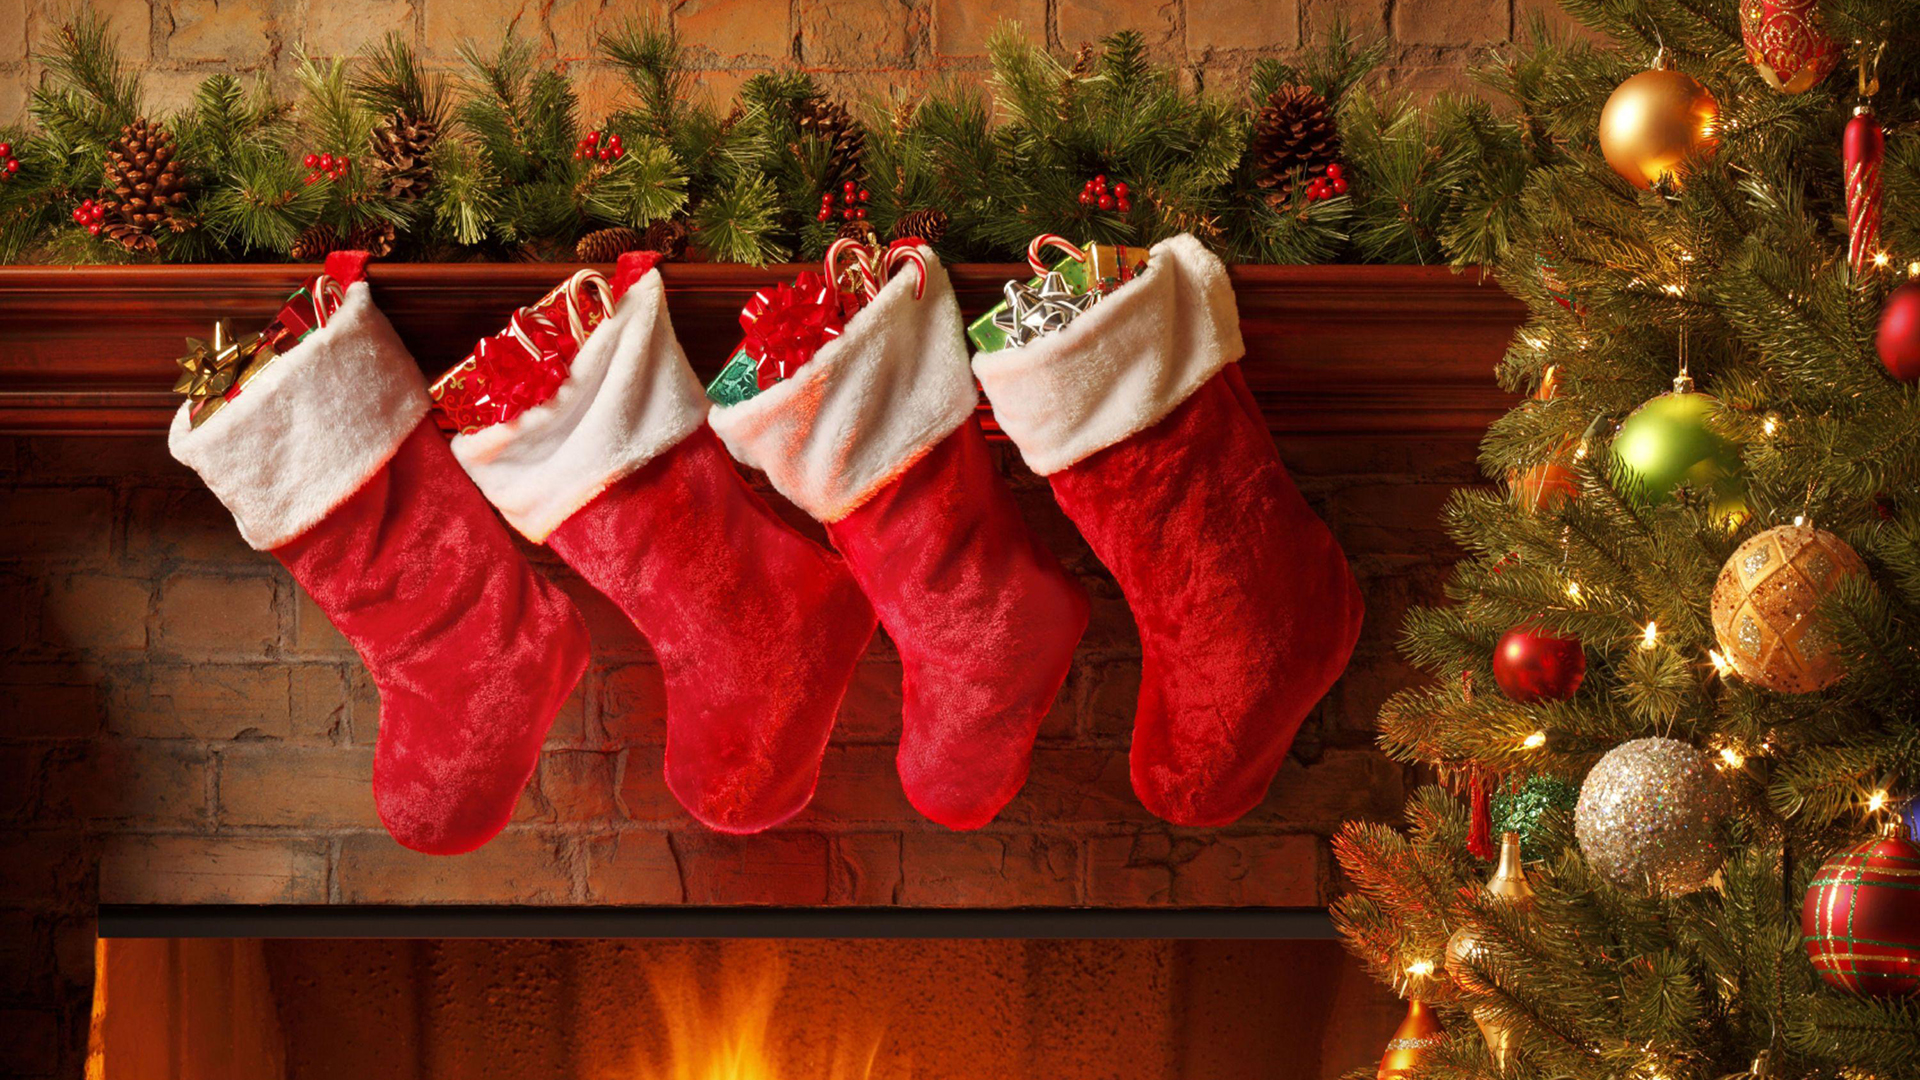 Christmas stockings on a fireplace. Virtual background to use on Zoom, Microsoft Teams, Skype, Google Meet, WebEx or any other compatible app.